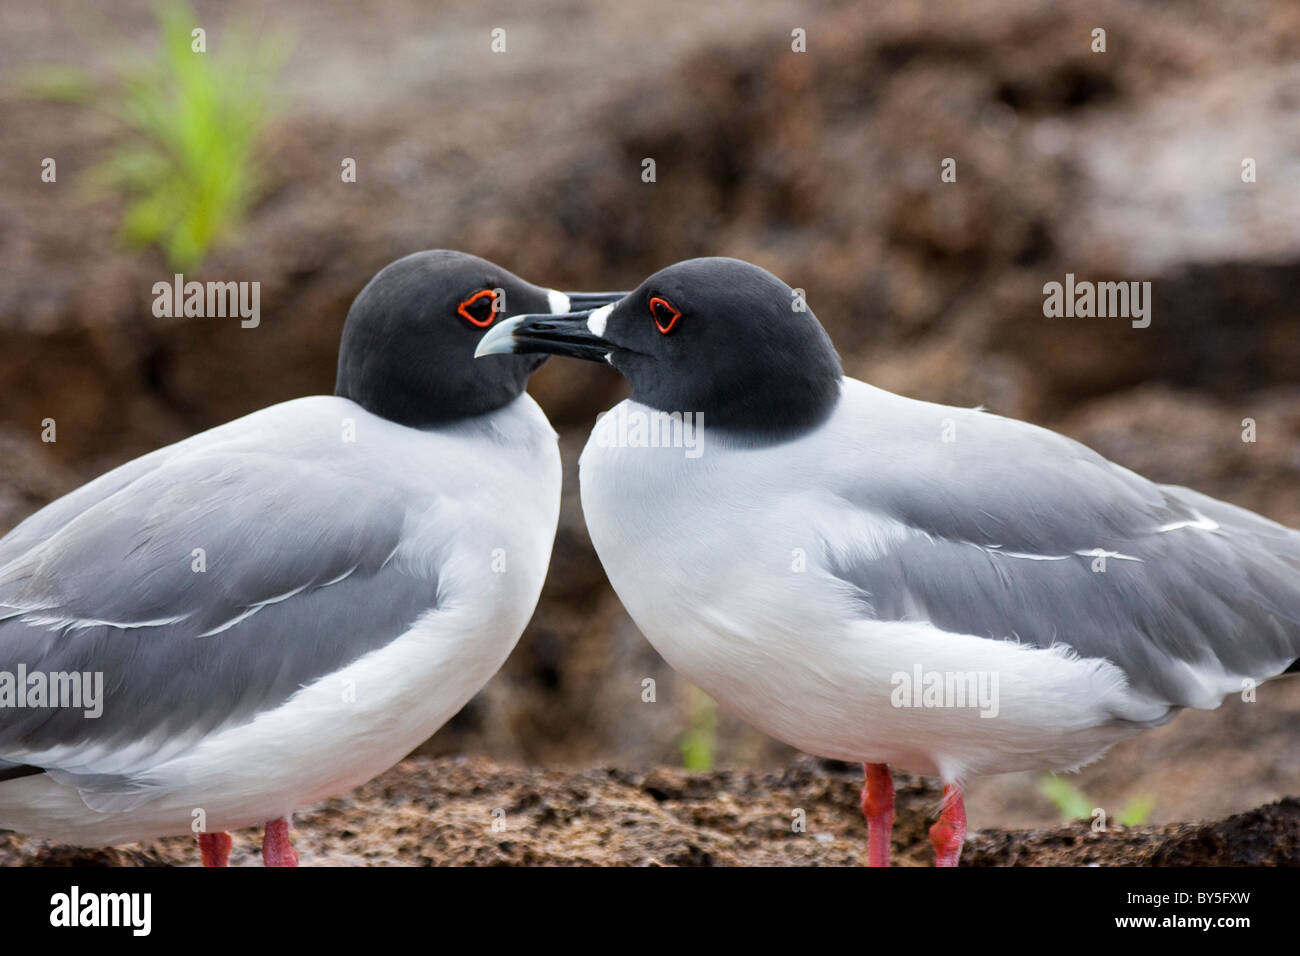 Birds Swallow-tailed Gull Creagrus furcatus Mating Genovesa Darwin Bay The Galapagos Islands - Stock Image